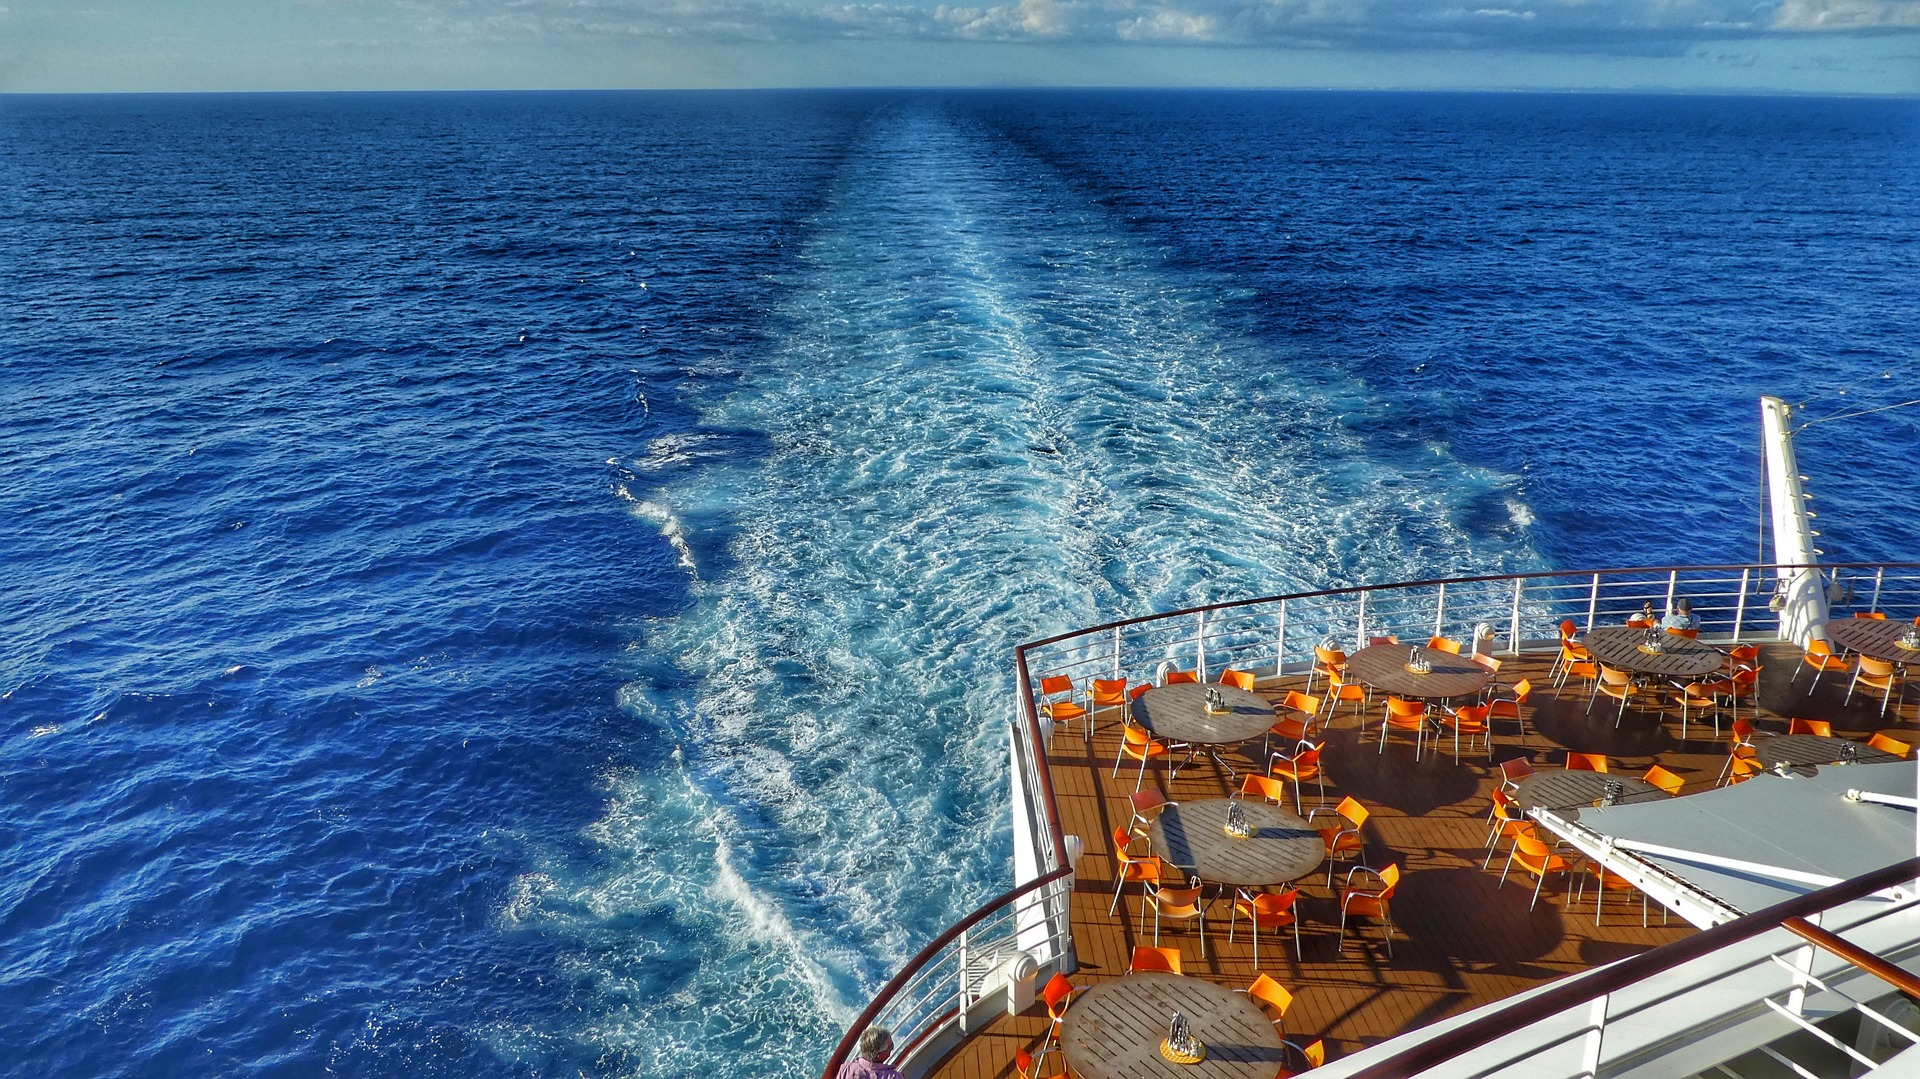 Cruise ship deck with wake